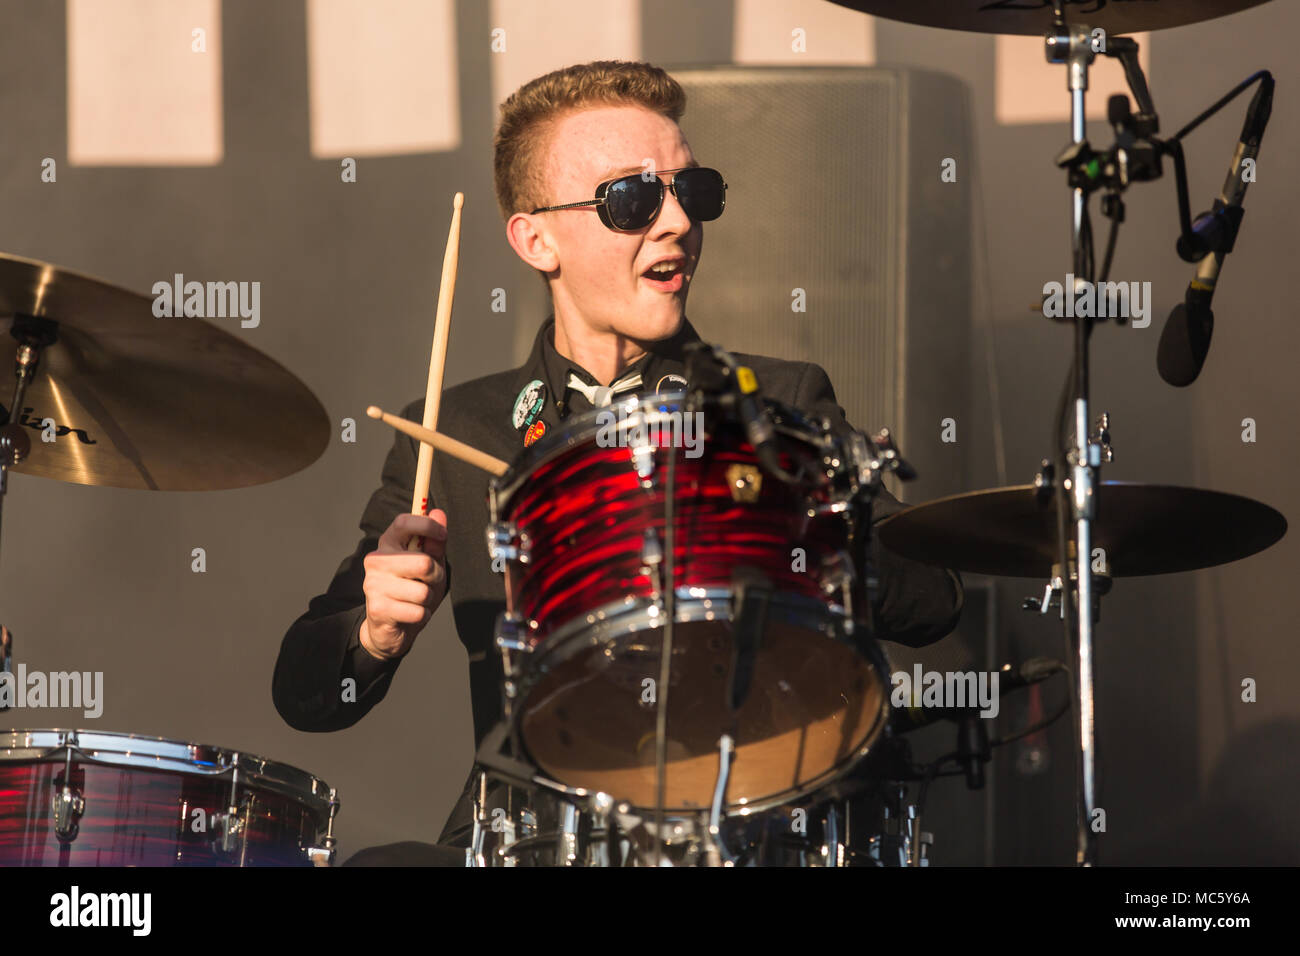 Evan Walsh, drummer from the Irish rhythm and blues band The Strypes live at the 26th Heitere Open Air in Zofingen, Aargau - Stock Image